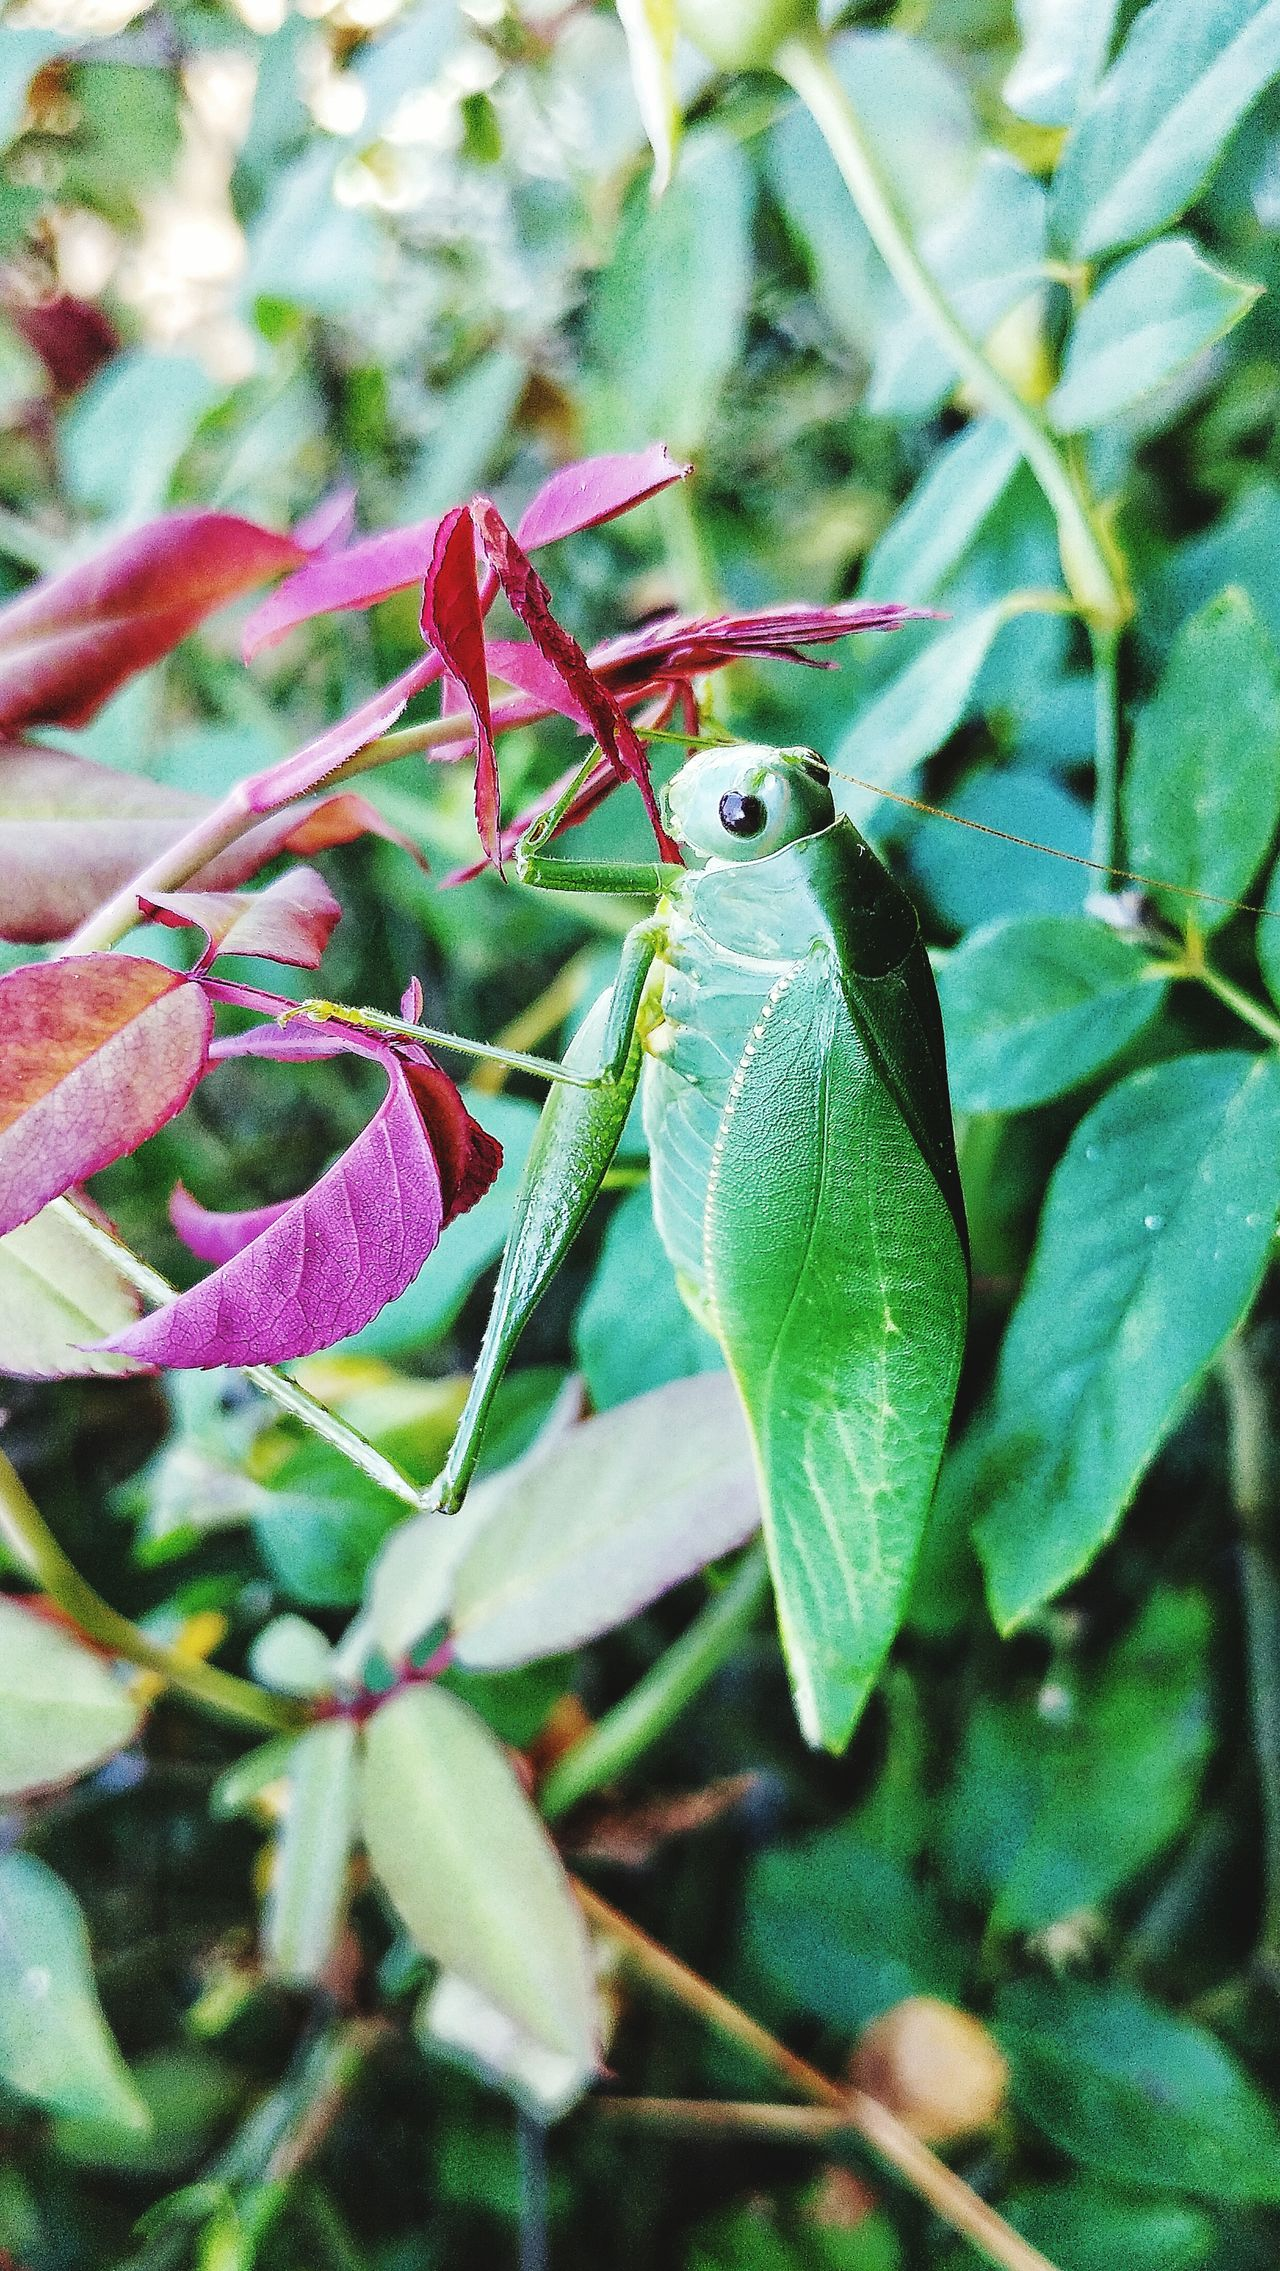 Animals In The Wild One Animal Animal Themes Insect Close-up No People Day Green Color Outdoors Animal Wildlife Nature Leaf